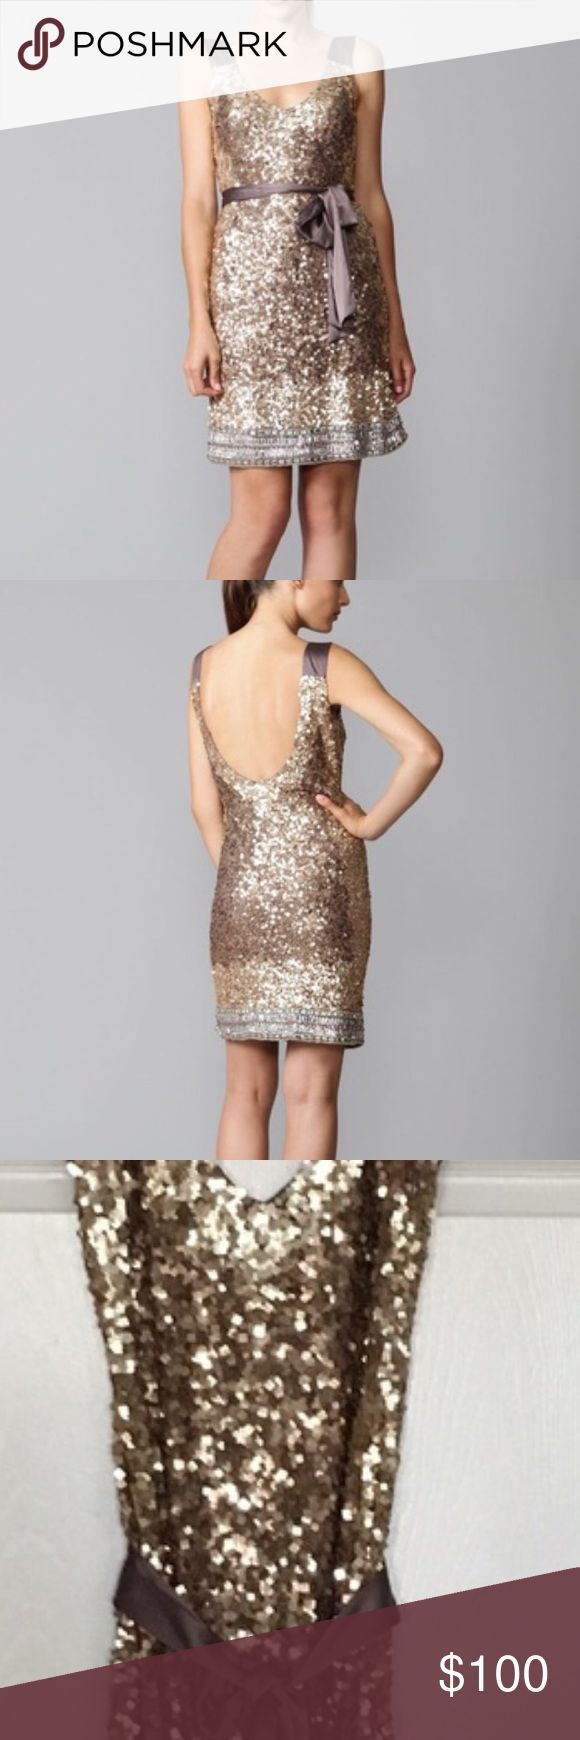 Sequin shift dress, backless Mark + James by Bagdley Mischka. Worn once. Bust: 36 in. Waist: 30in. Hem: 36 in. Great for wedding season! Badgley Mischka Dresses Backless